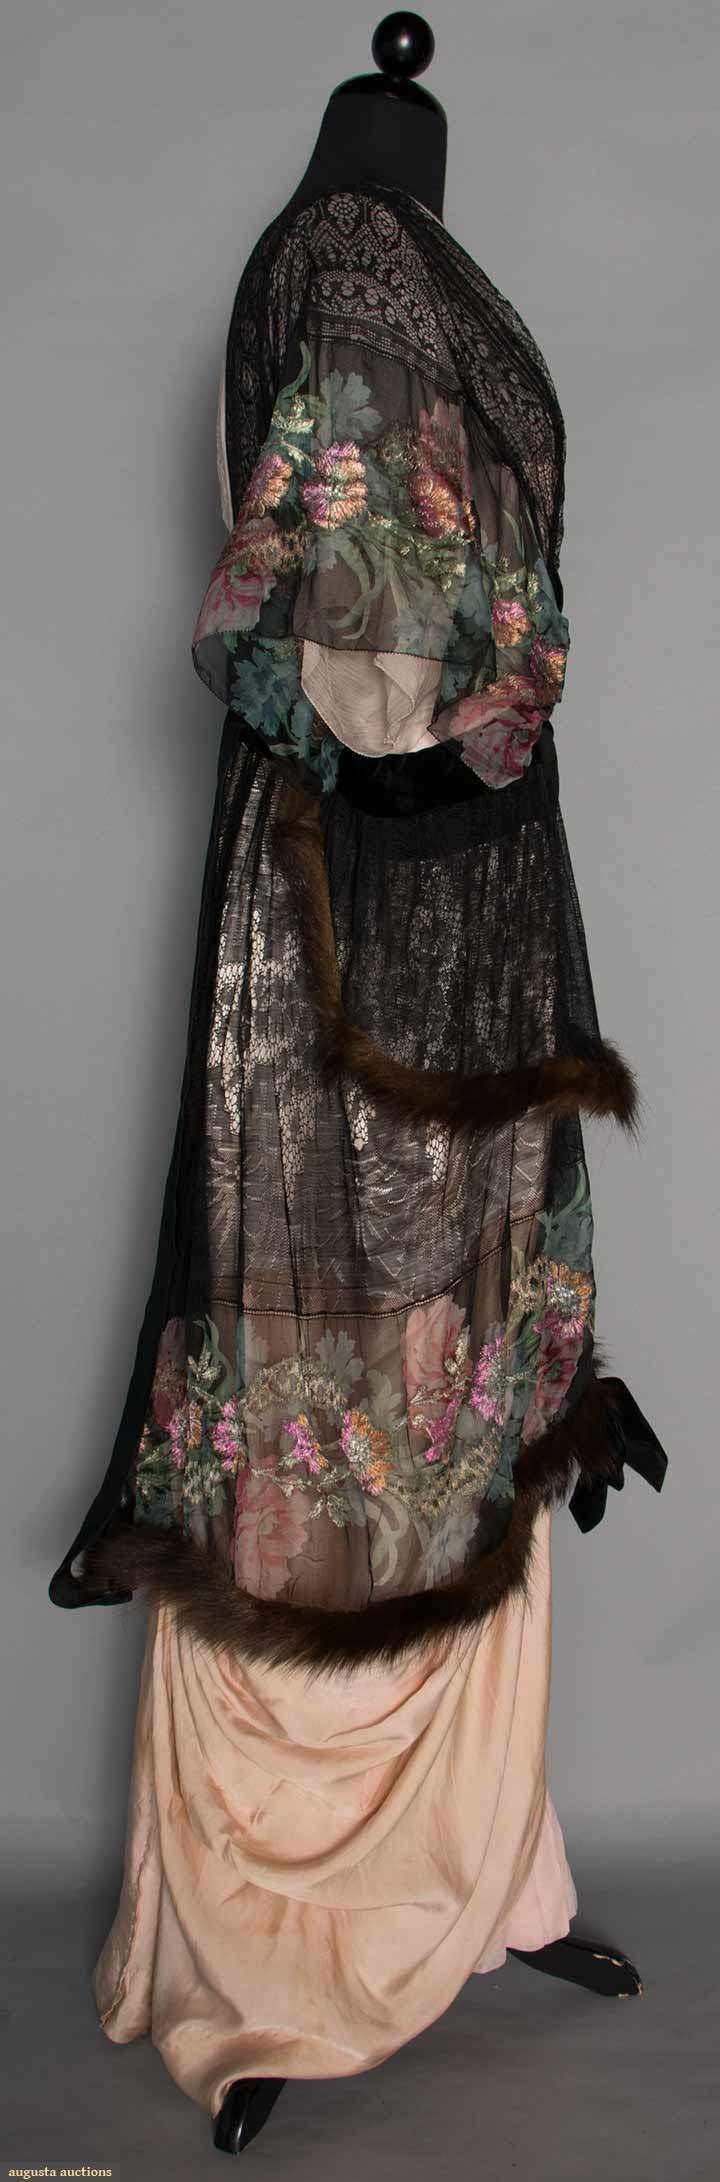 PRINTED LAME EVENING GOWN, c. 1913. Gown of floral printed & lame brocaded chiffon w/ black lace, short kimono sleeves, 2 fur trimmed chiffon & lace skirt tiers, black velvet bow trims, narrow draped pale pink underskirt. Sideway